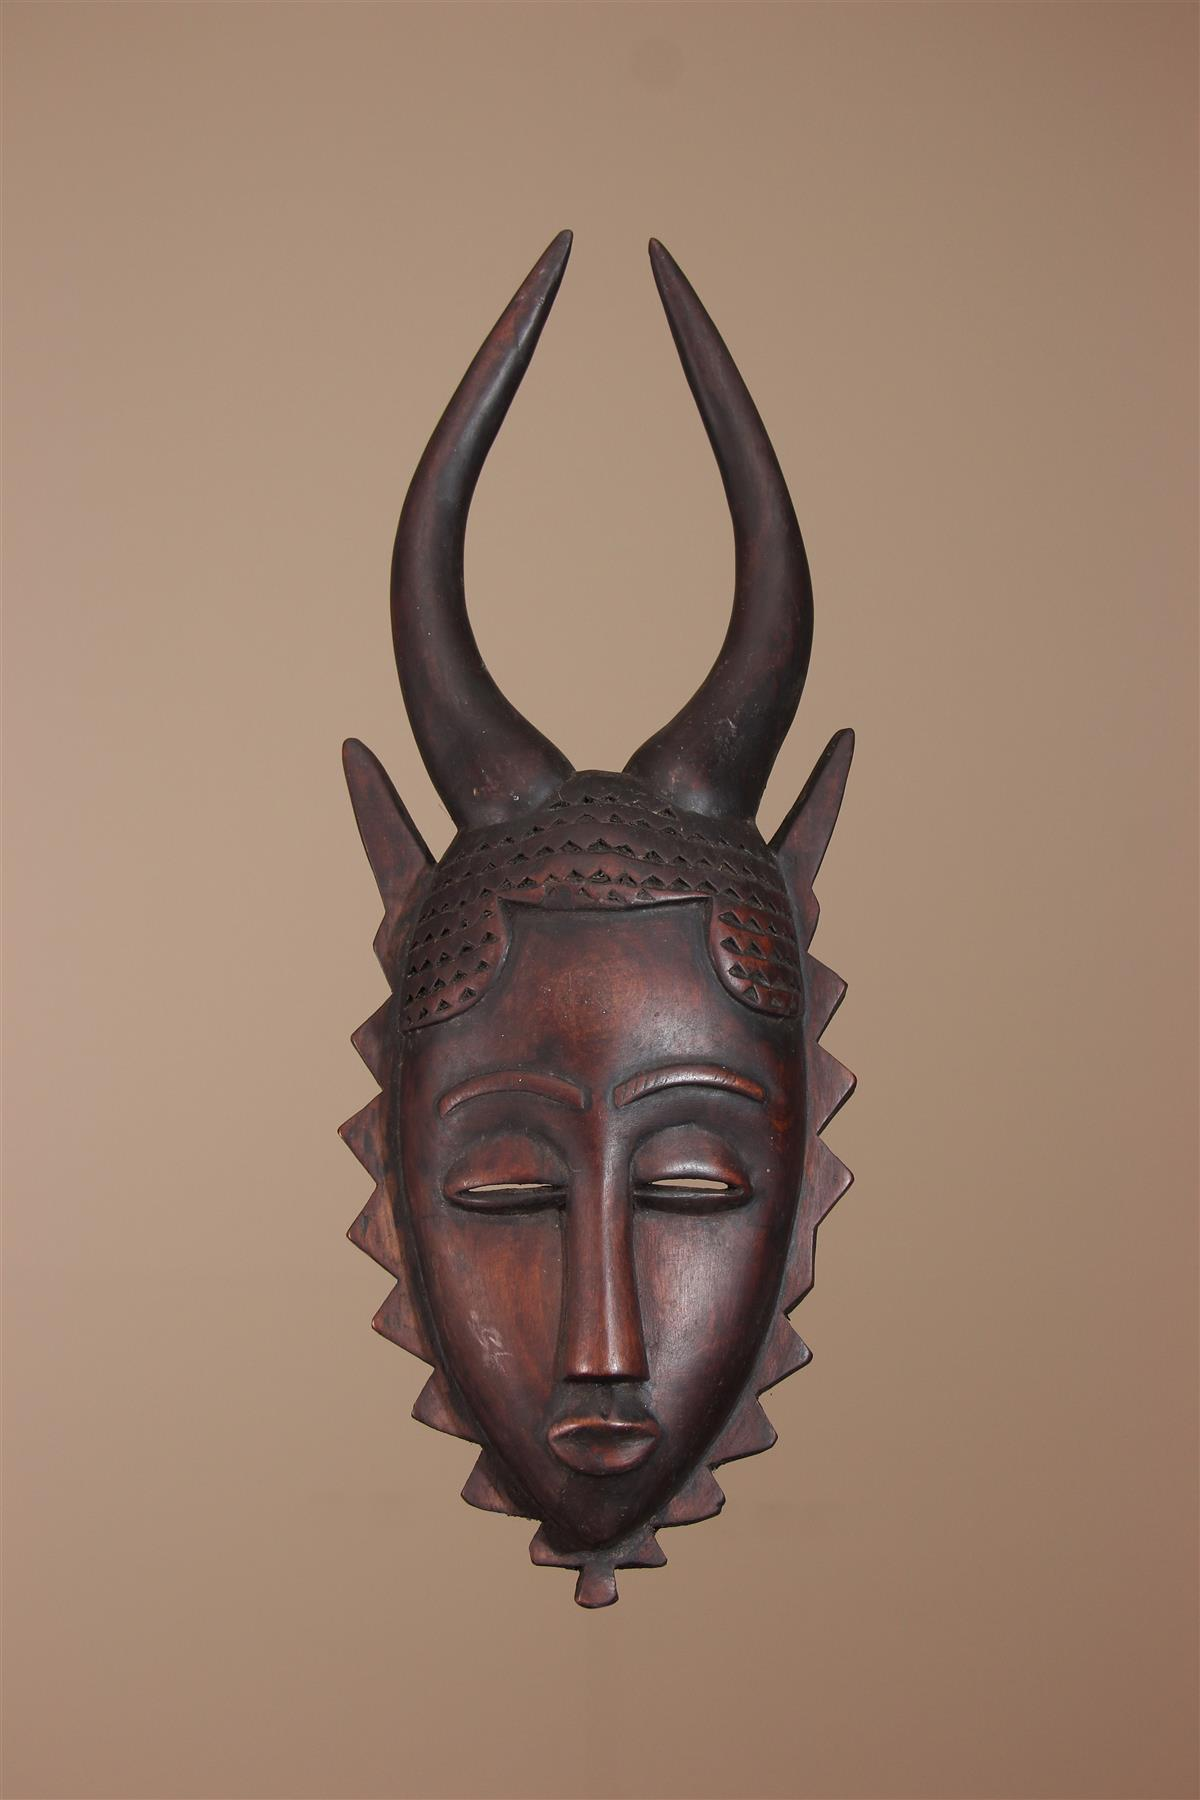 Masque Baoule - Déco africaine - Art africain traditionnel